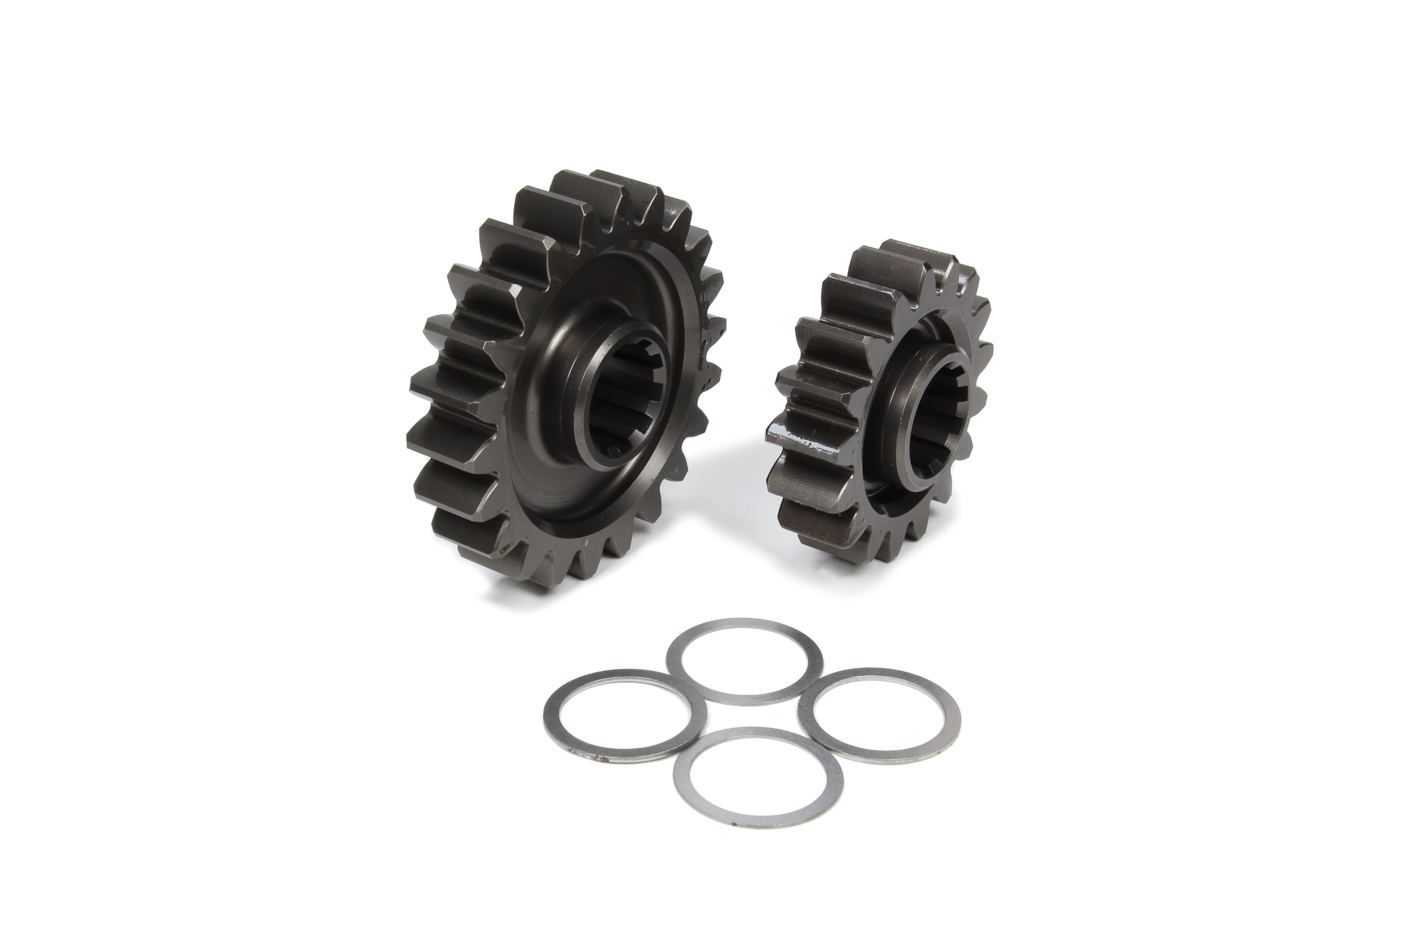 Coleman Machine 207-4 Quick Change Gear Set, Pro-Lite, Set 4, 10 Spline, 4.11 Ratios 5.32 / 3.18, 4.86 Ratios 6.29 / 3.75, Steel, Each